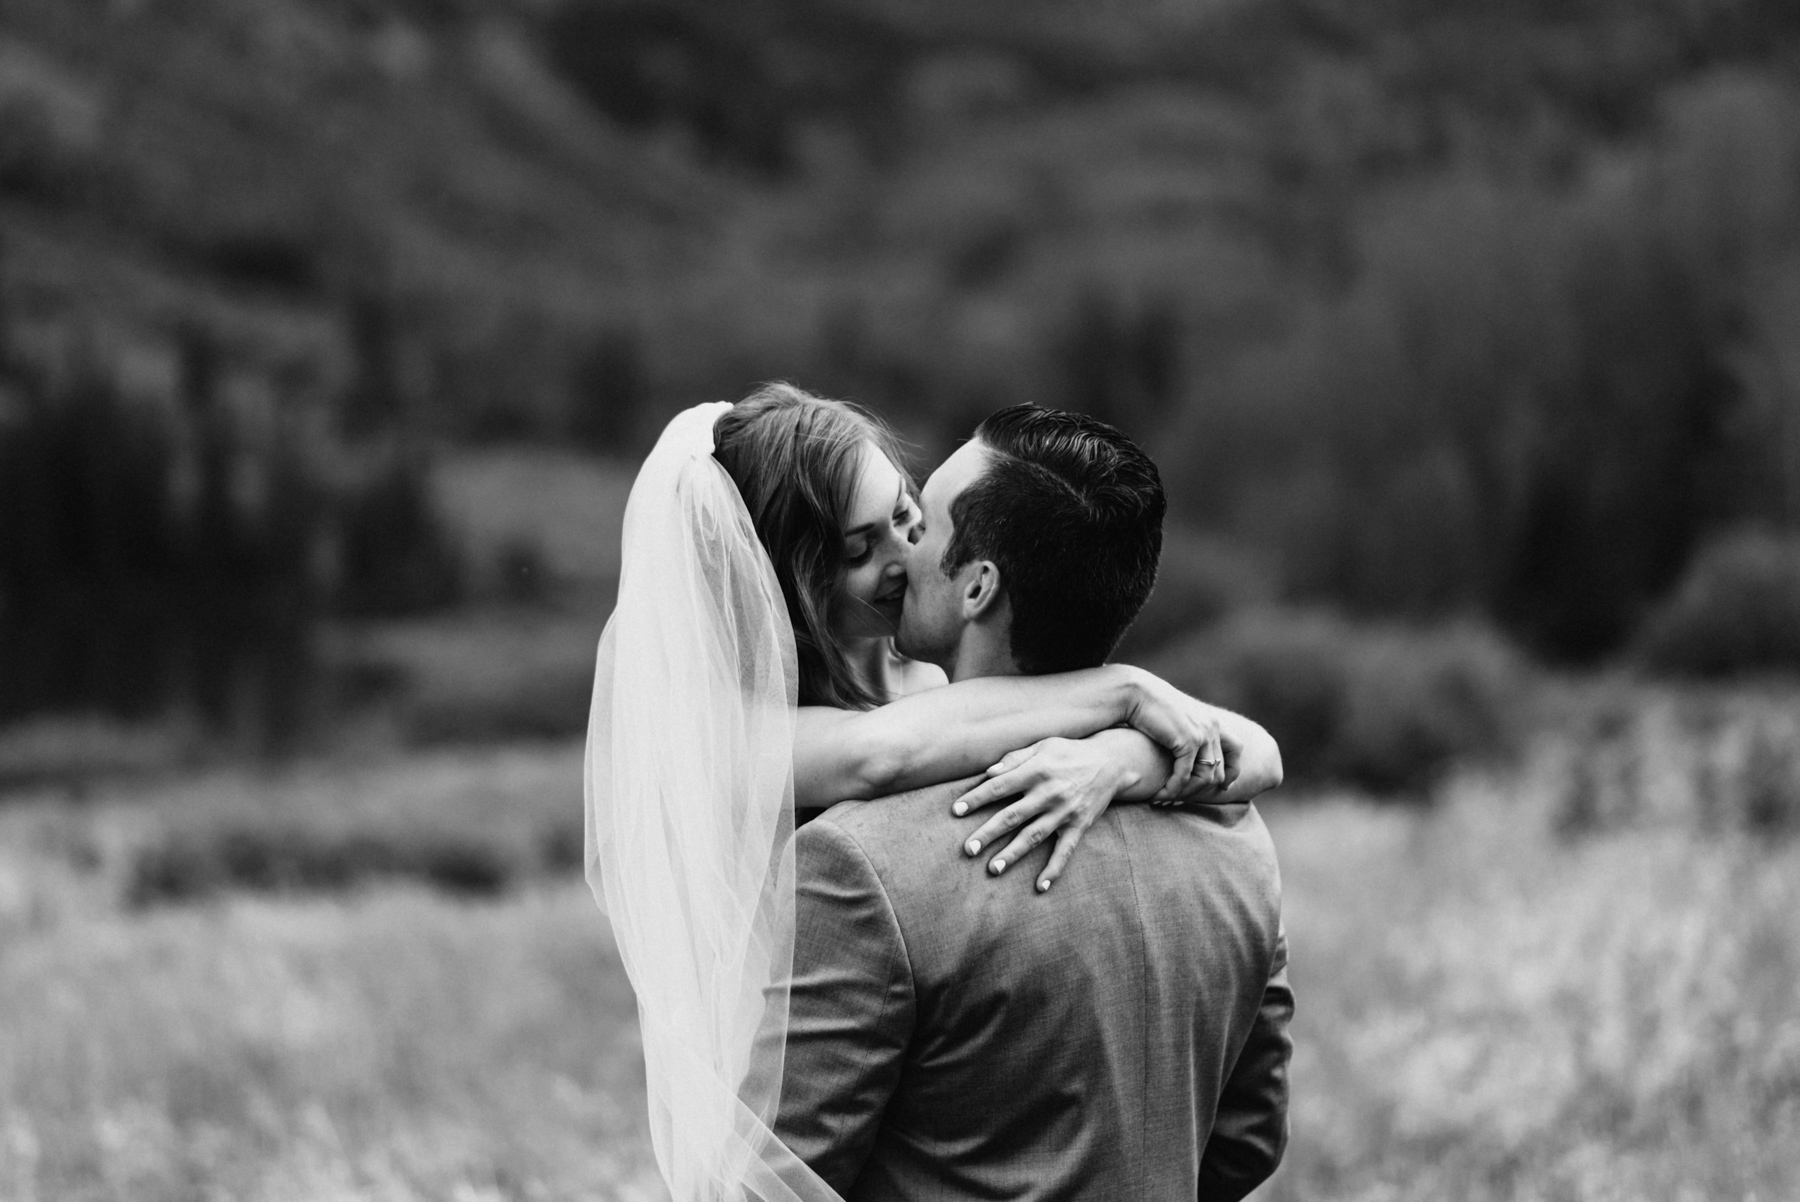 Heather and Darron embracing after their Maroon Bells Elopement. There was so much love that day, despite the rainy wedding ceremony. The Colorado mountains are an amazing place to elope, with so much beauty. Definitely one of my favorite Aspen destination elopements!